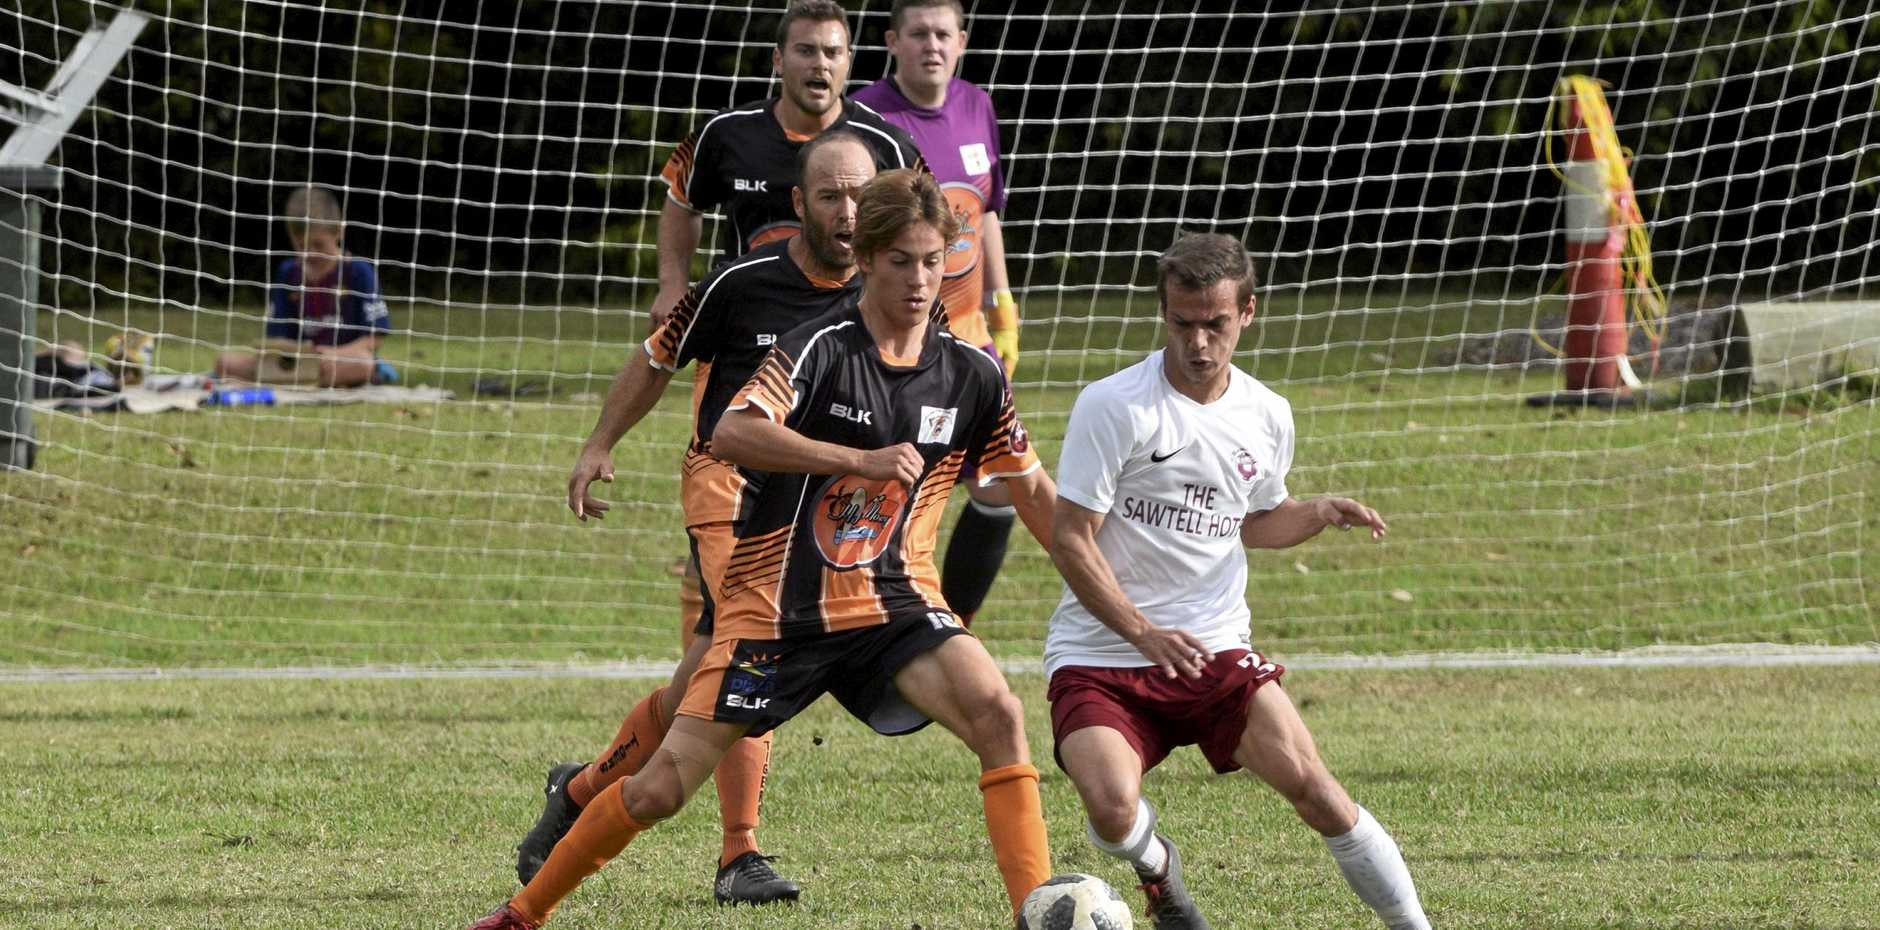 STILL ON TOP: Boambee recorded a strong Men's Premier League result at home against the Coffs Coast Tigers.